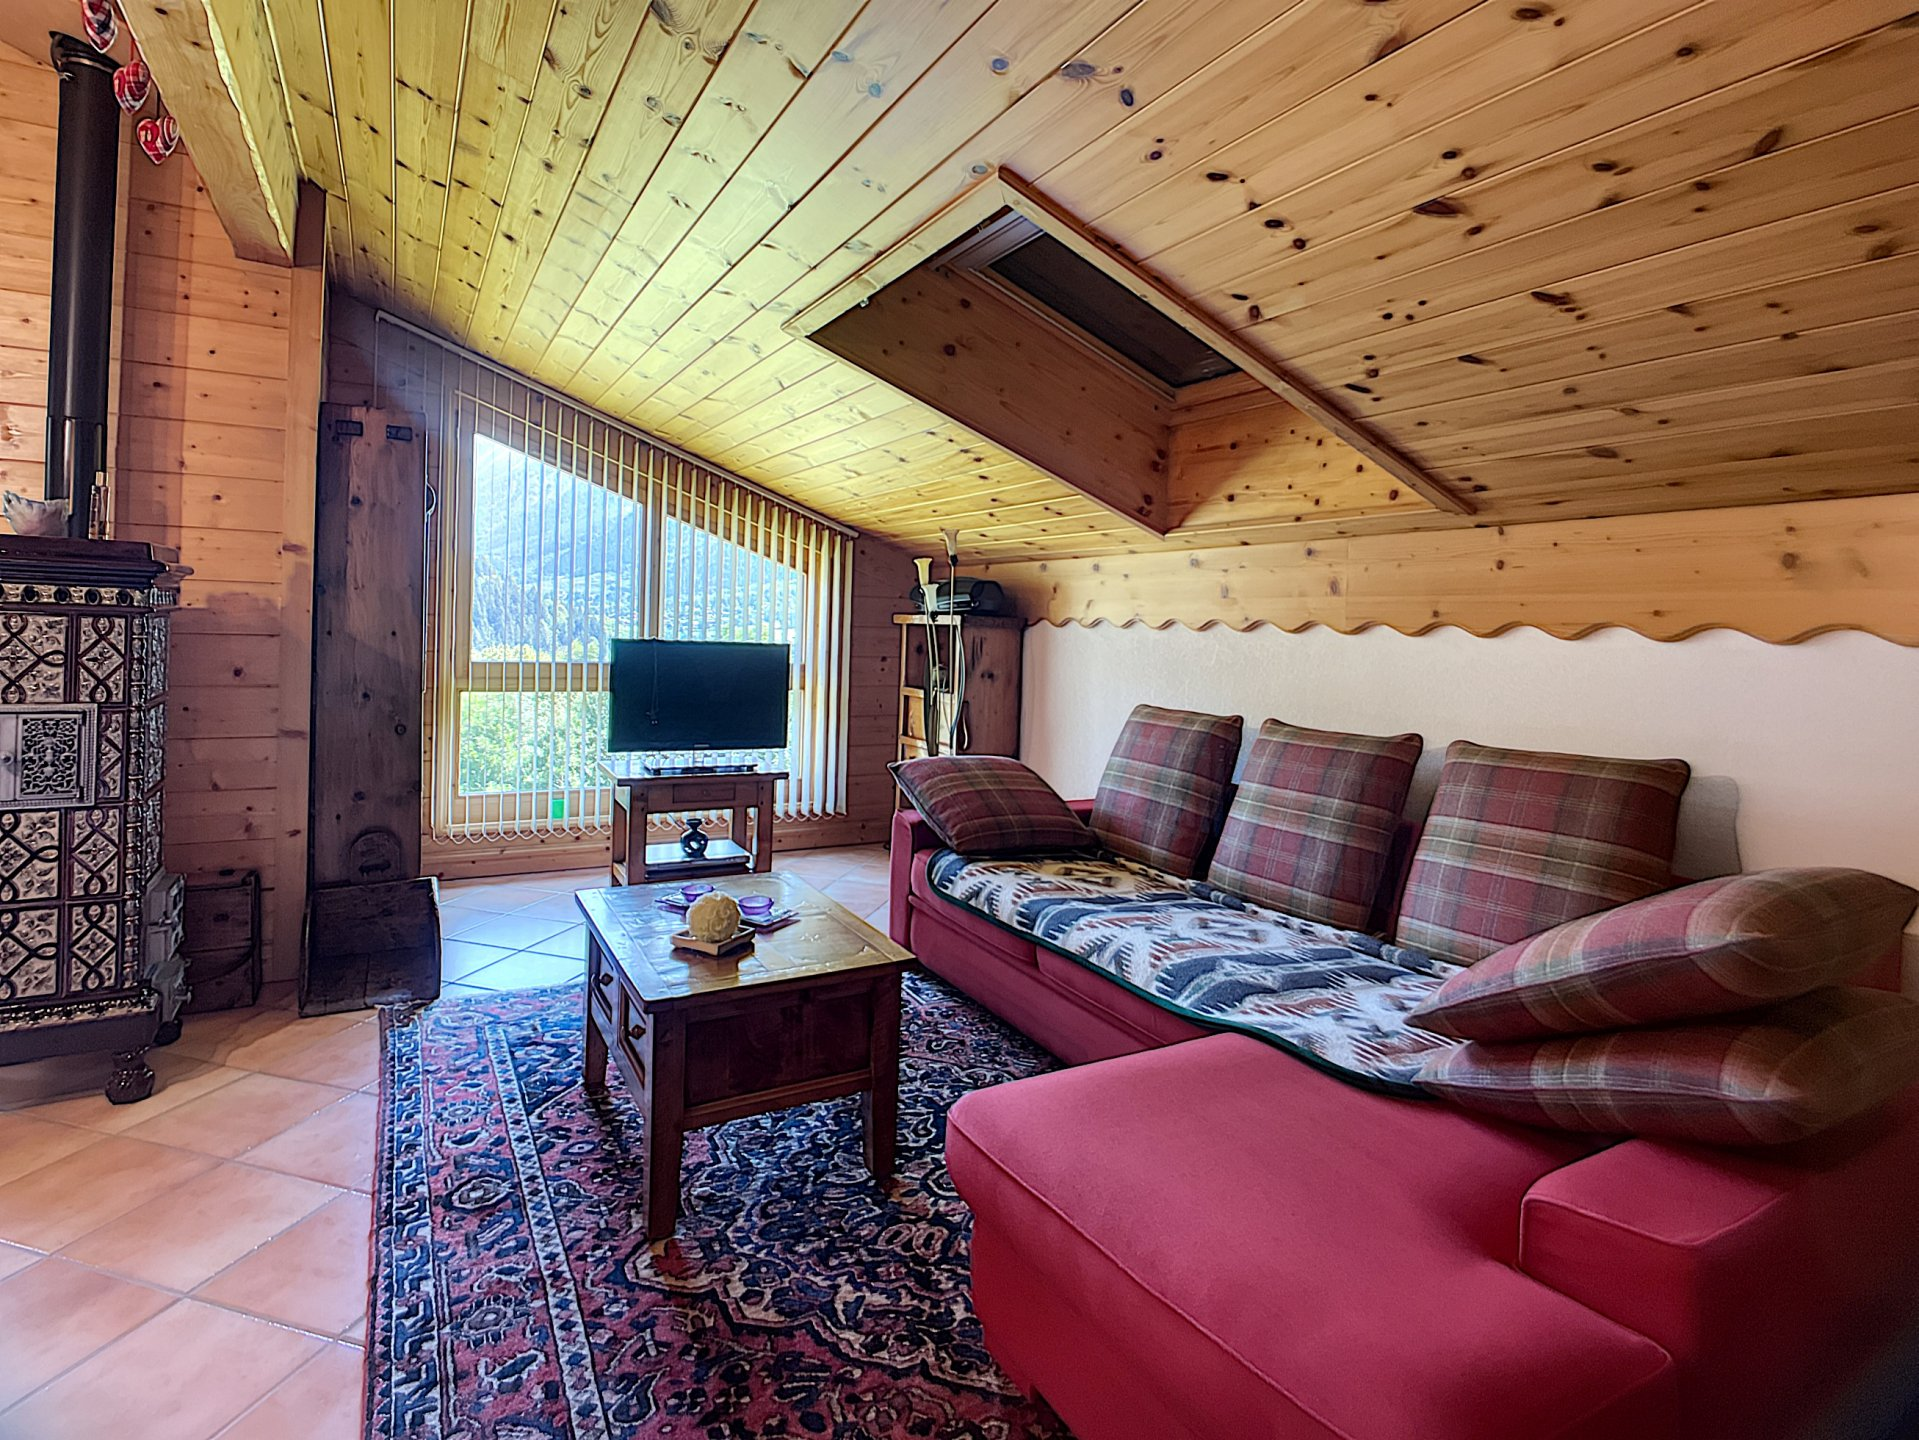 Appartement 2 chambres, Les Houches